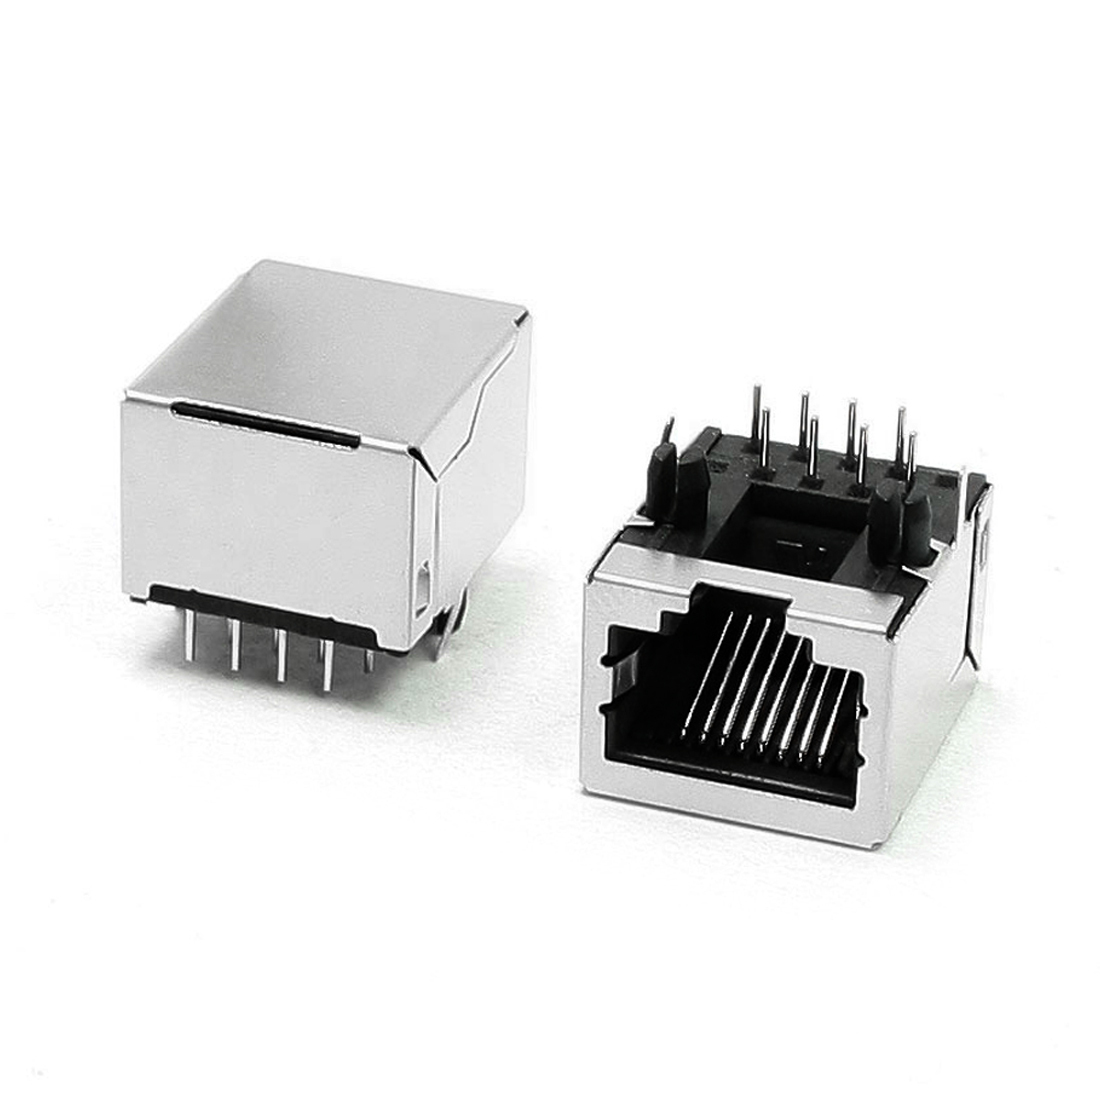 10 Pcs PCB Plug-in Design 8 Right Angle Pins RJ45 Jacks Ports 18mm Long